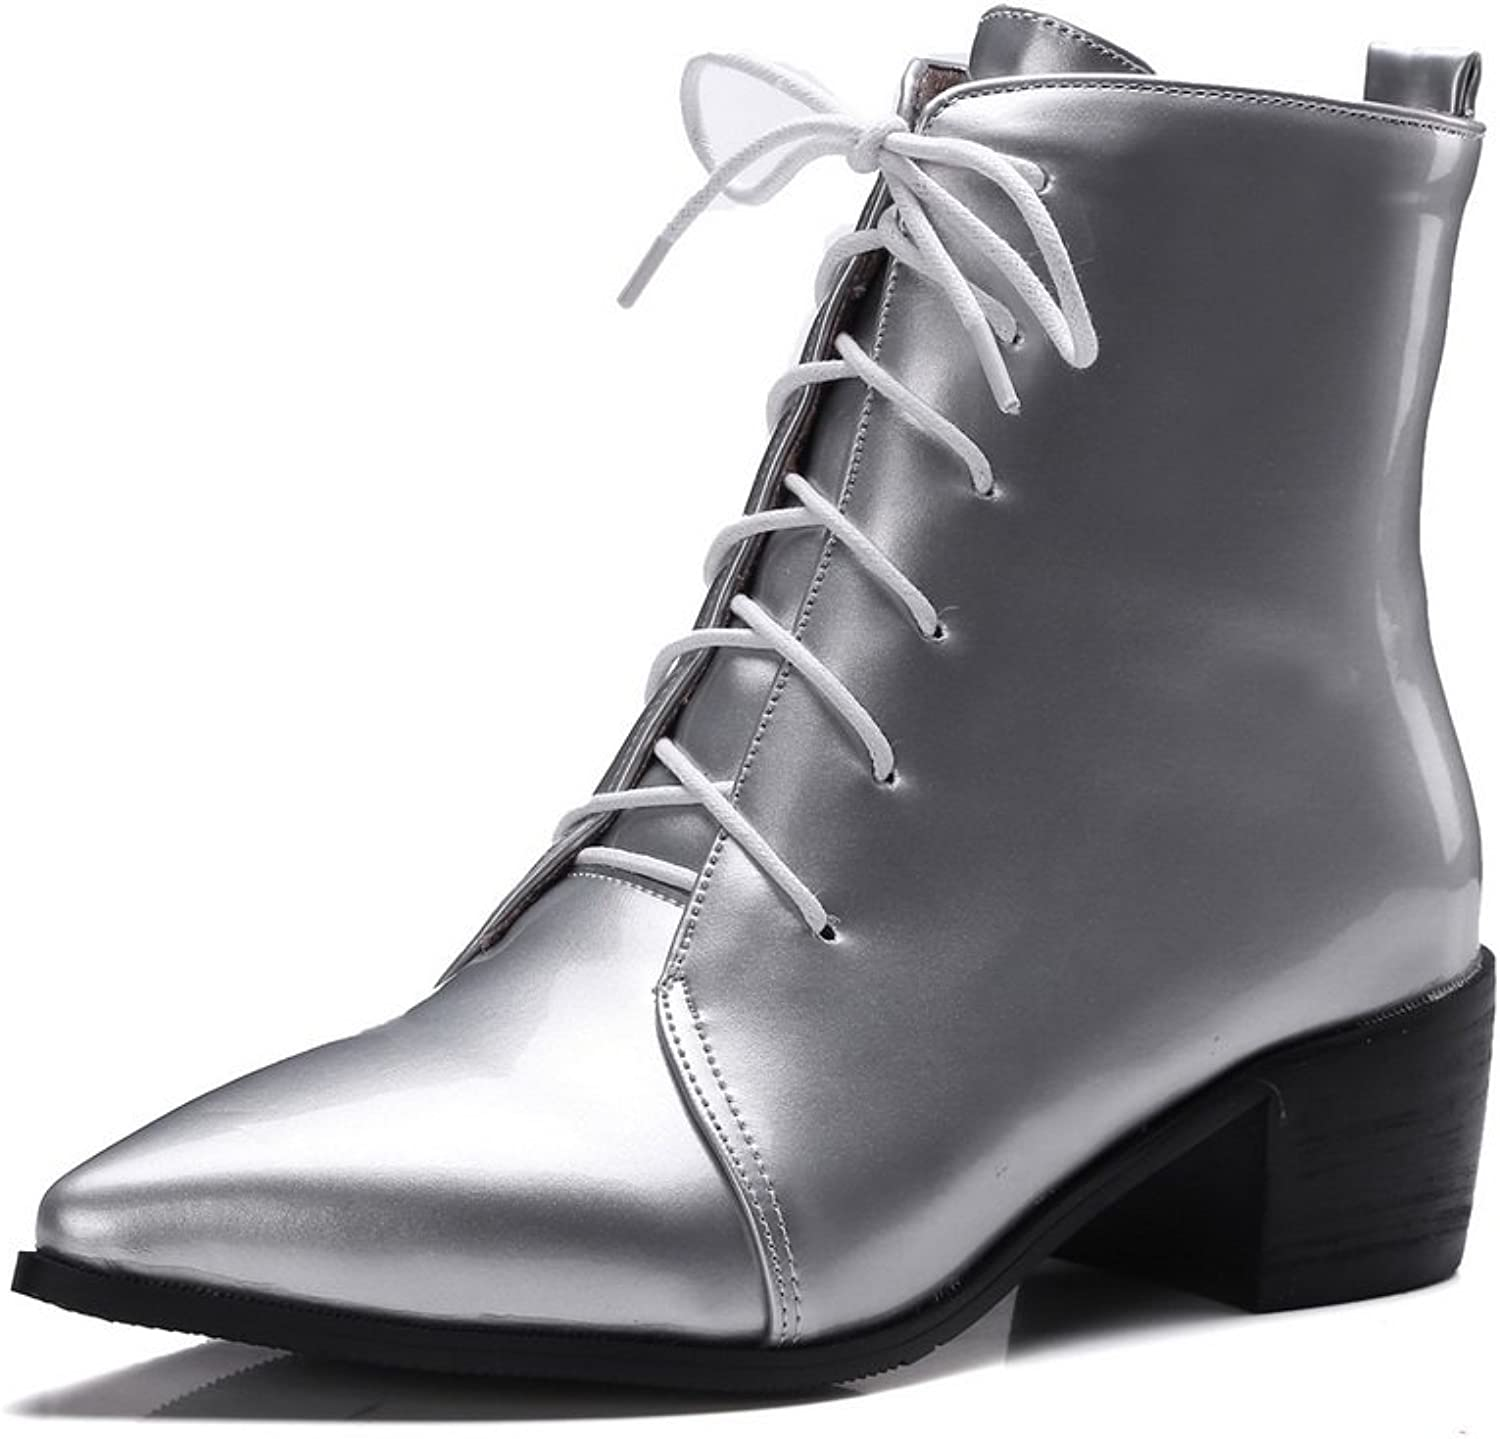 AdeeSu Ladies Lace-Up Mule Kitten-Heels Patent Leather Boots